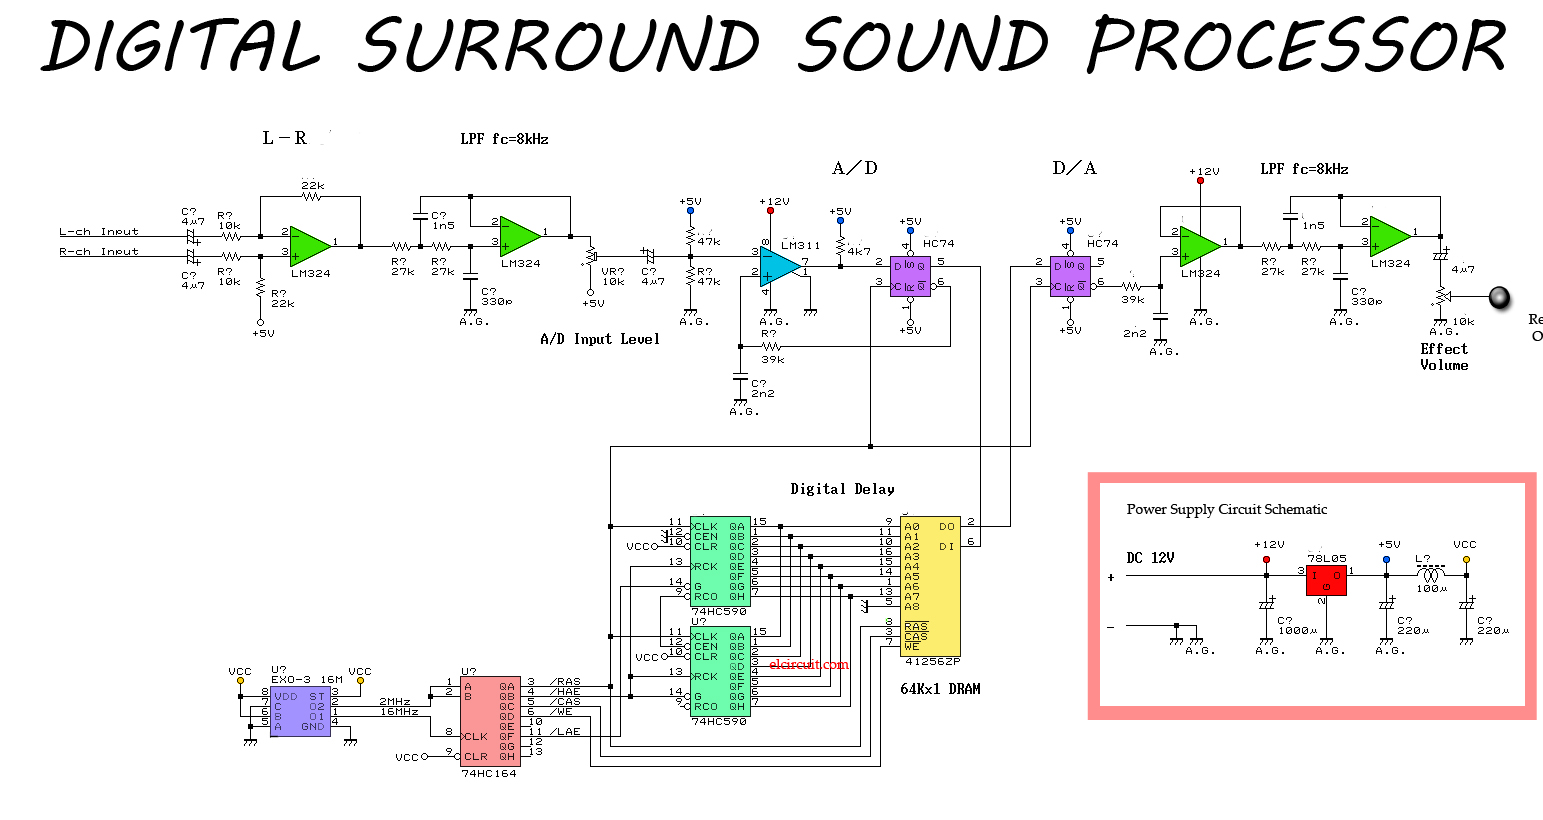 Digital Sound Circuit Diagram Images Voice Recorder Schematic Simple Surround Processor